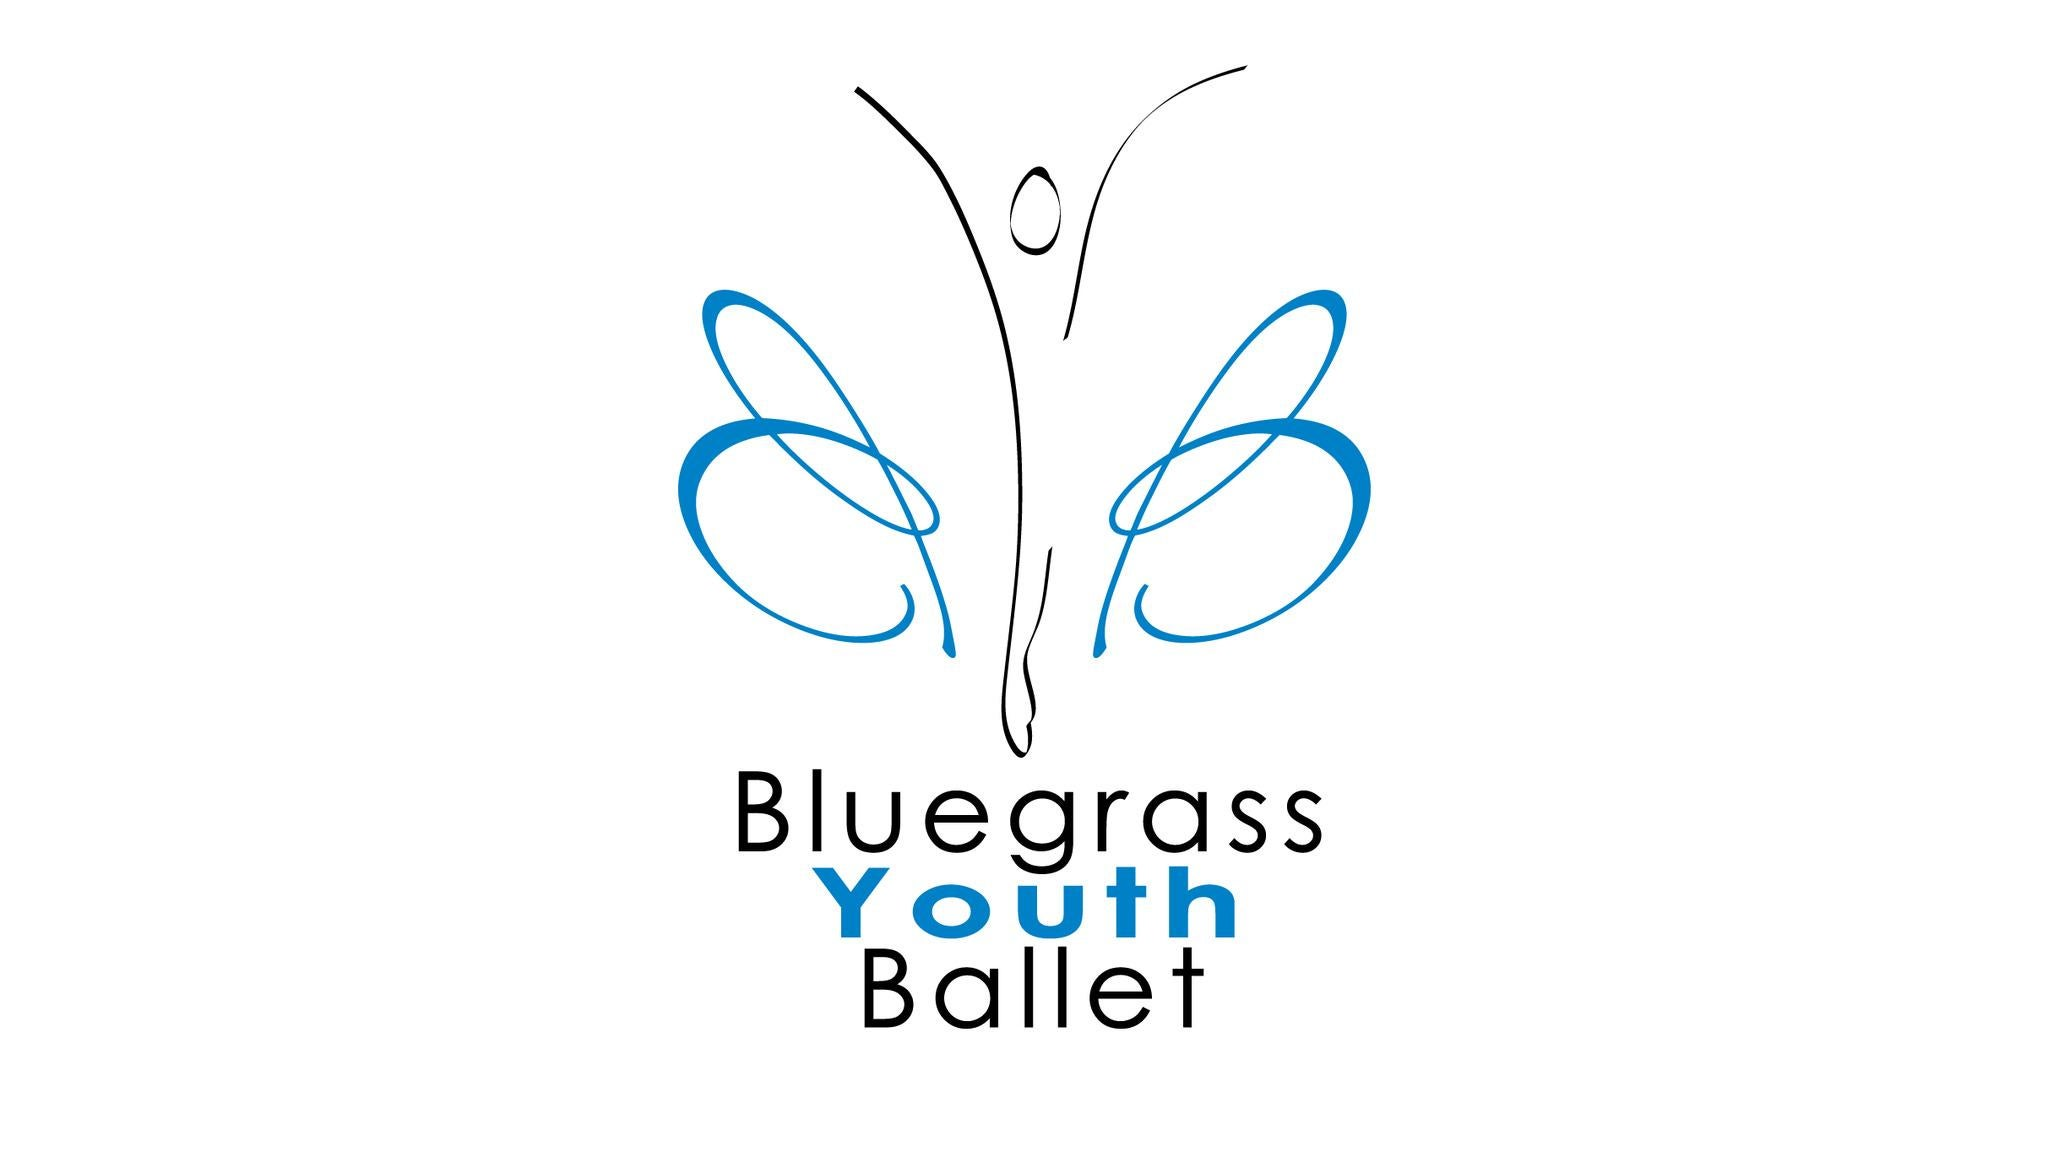 Bluegrass Youth Ballet: The Little Mermaid